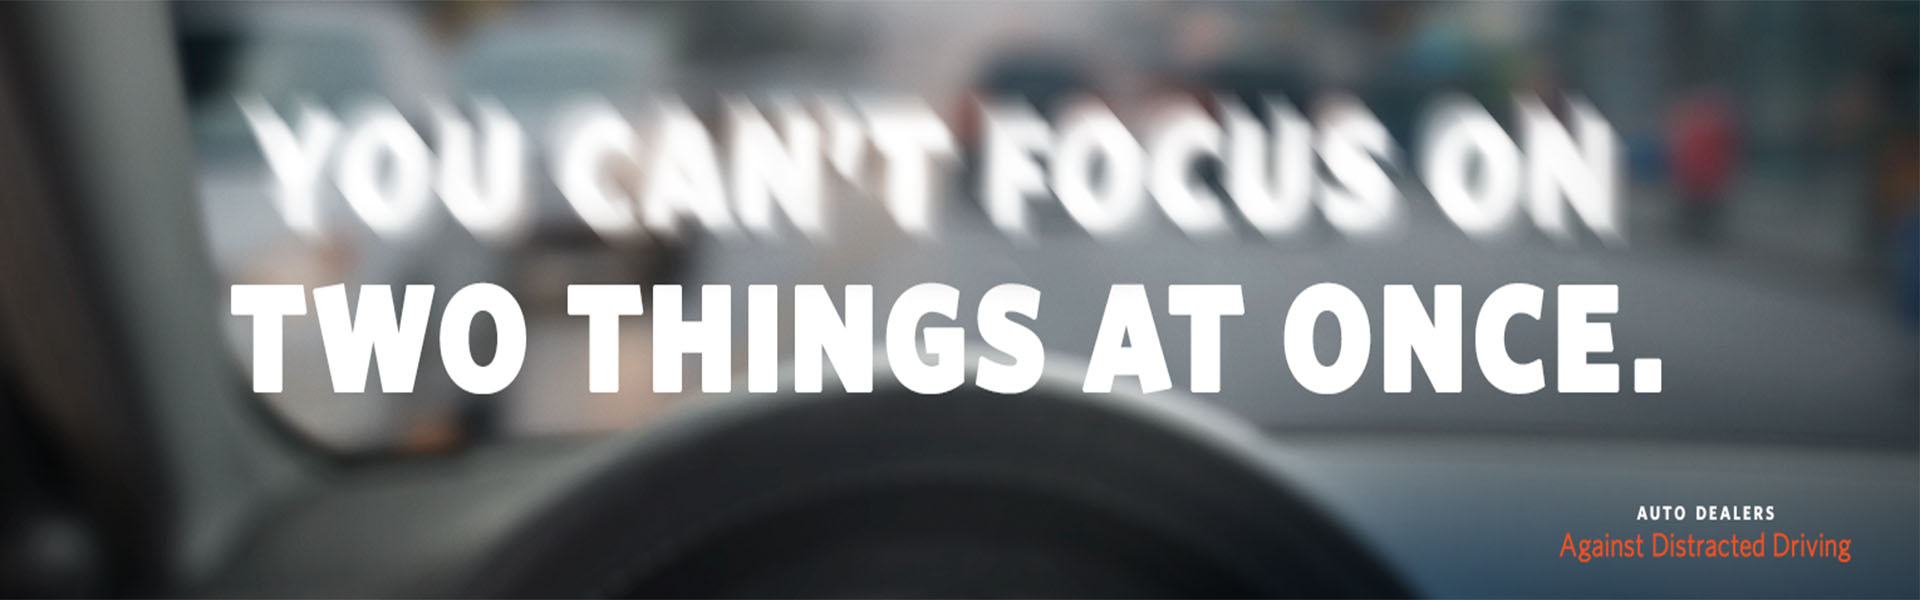 2018 Auto Dealers Against Distracted Driving